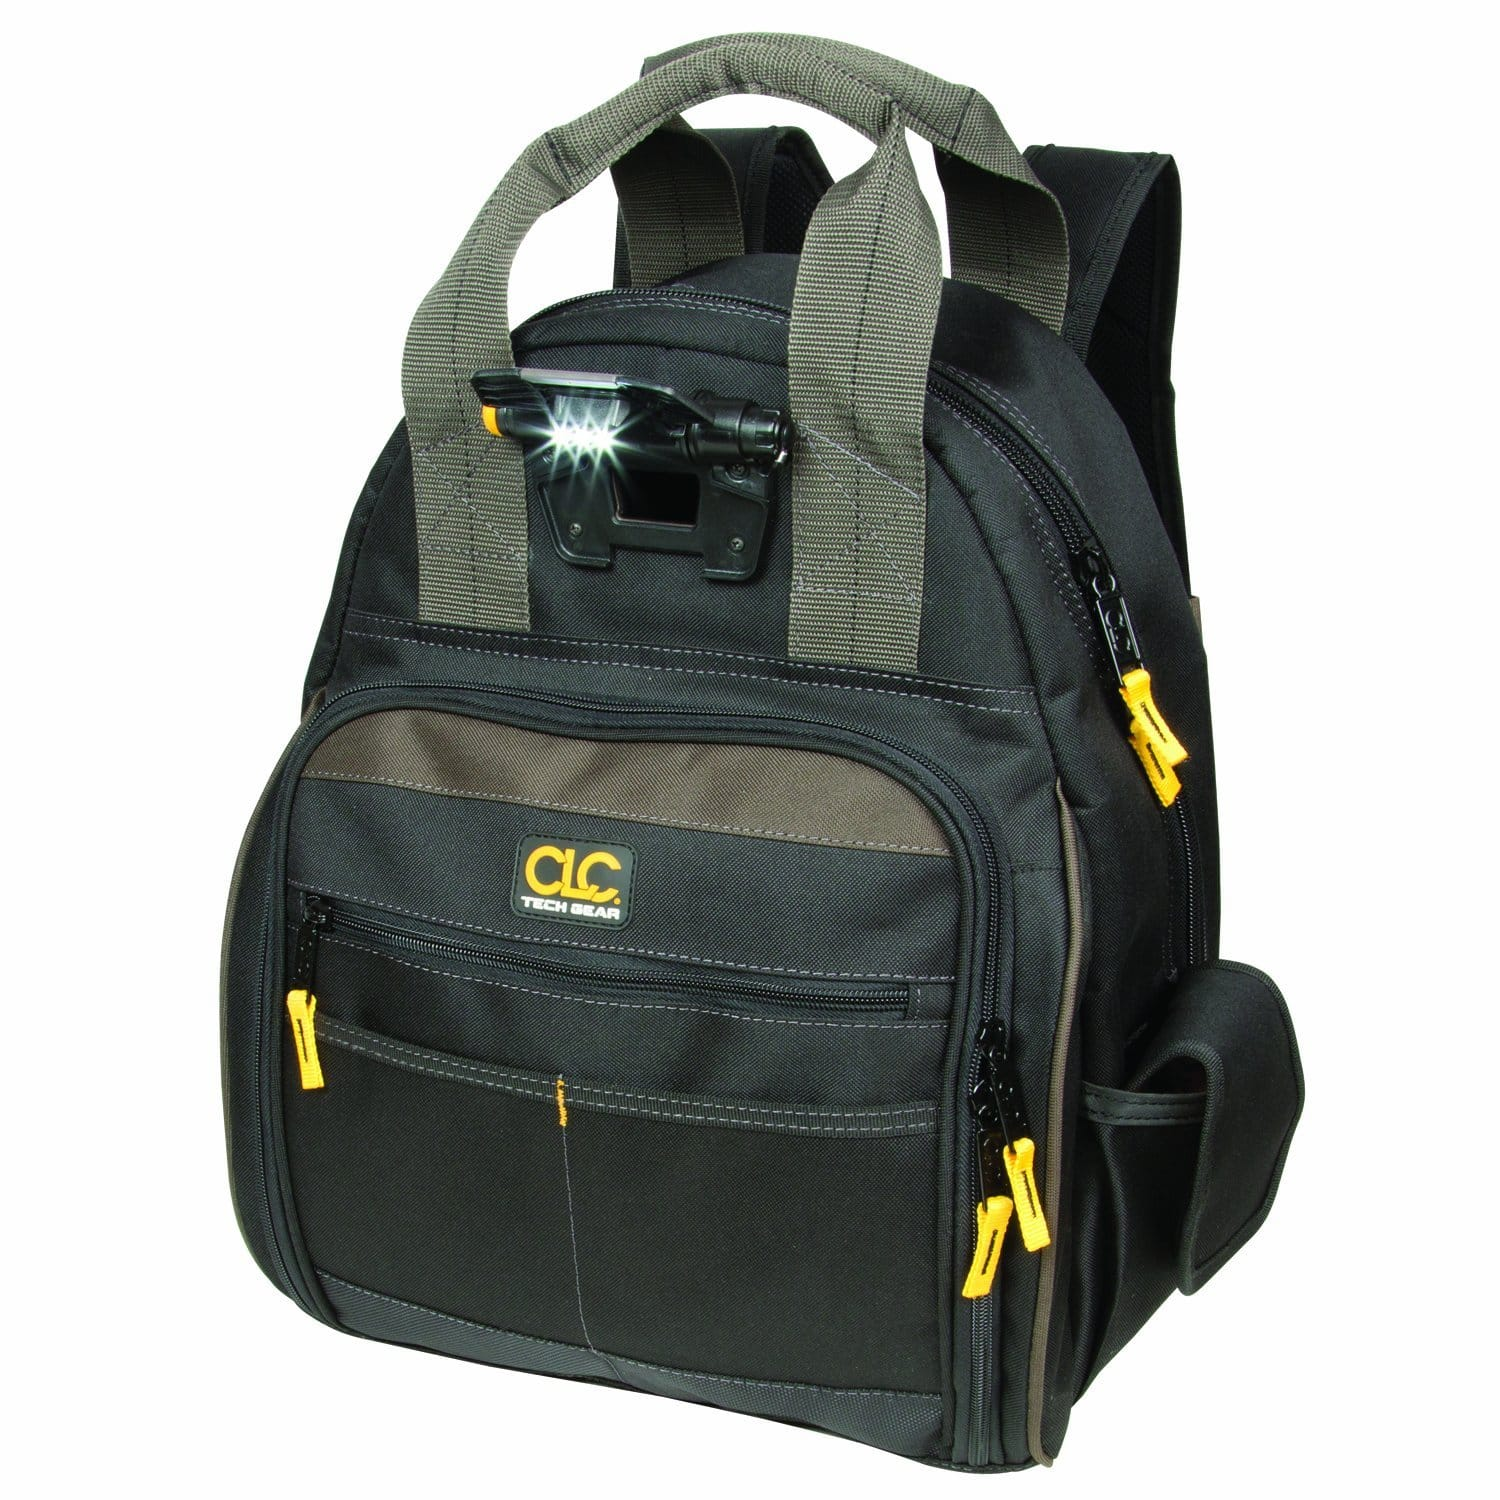 CLC Lighted Tool Back Pack at Amazon $63.96 with FSS